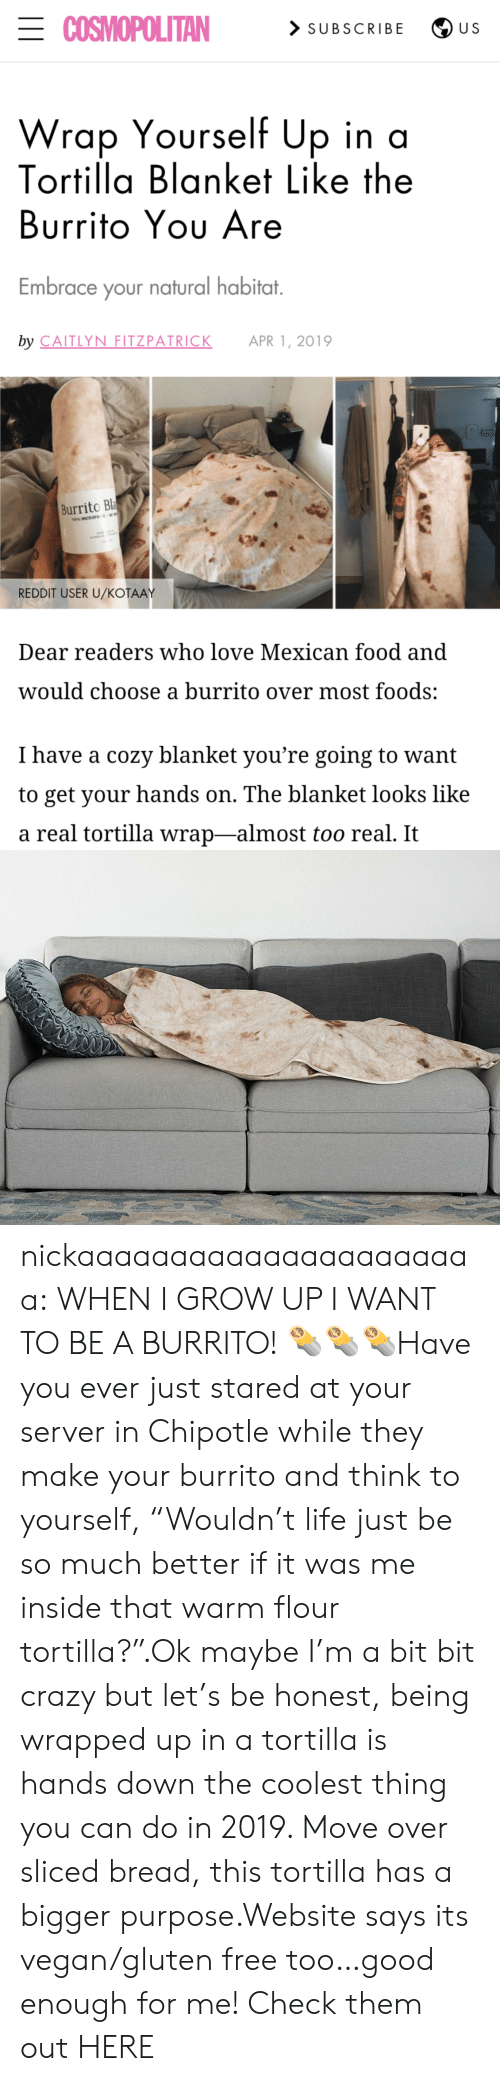 """apr: ECOSMOPOLITAN  > SUBSCRIBE  U S  Wrap Yourself Up in a  Tortilla Blanket Like the  Burrito Yου Are  Embrace your natural habitat.  by CAITLYN FITZPATRICK  APR 1, 2019  Burrito Bla  100% MICROFE  REDDIT USER U/KOŤAAY  Dear readers who love Mexican food and  would choose a burrito over most foods:  I have a cozy blanket you're going to want  to get your hands on. The blanket looks like  a real tortilla wrap-almost too real. It nickaaaaaaaaaaaaaaaaaaaaaa:  WHEN I GROW UP I WANT TO BE A BURRITO! 🌯🌯🌯Have you ever just stared at your server in Chipotle while they make your burrito and think to yourself, """"Wouldn't life just be so much better if it was me inside that warm flour tortilla?"""".Ok maybe I'm a bit bit crazy but let's be honest, being wrapped up in a tortilla is hands down the coolest thing you can do in 2019. Move over sliced bread, this tortilla has a bigger purpose.Website says its vegan/gluten free too…good enough for me! Check them out HERE"""